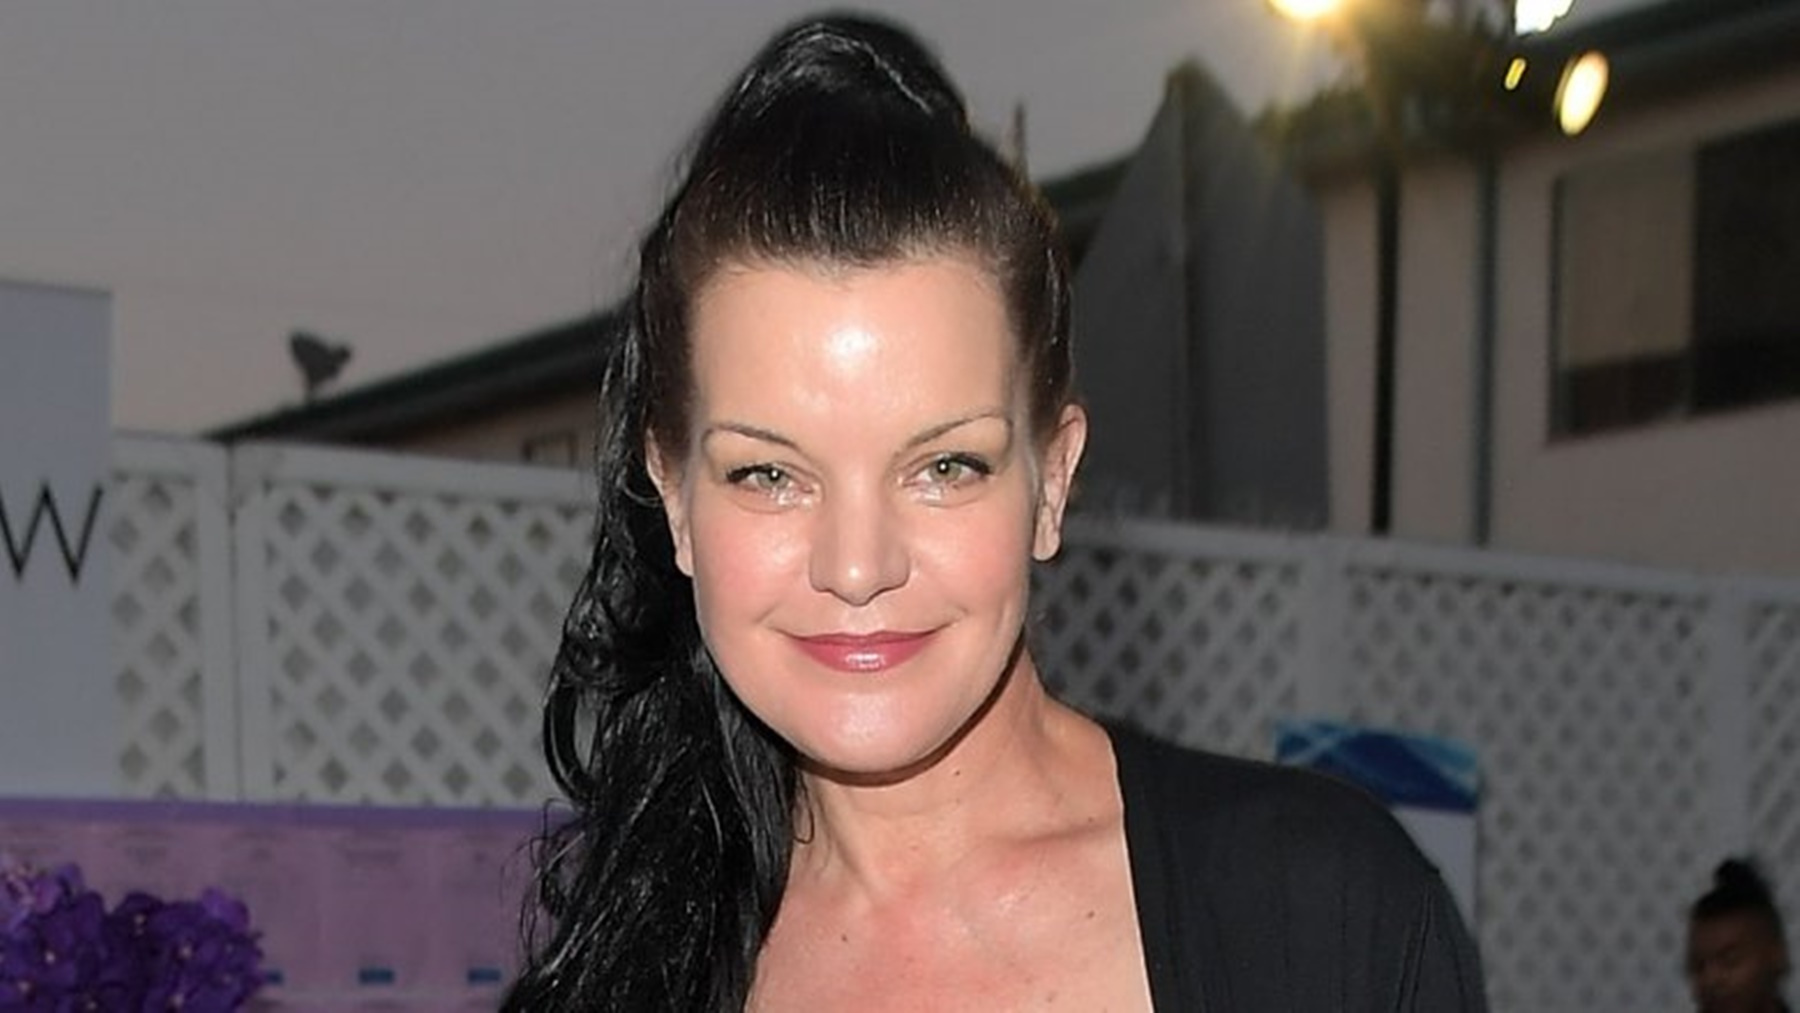 """former-ncis-star-pauley-perrette-was-hospitalized-and-missed-the-cbs-upront-presentation-for-her-new-comedy-show-broke-her-first-series-since-the-mark-harmon-feud-forced-her-out"""